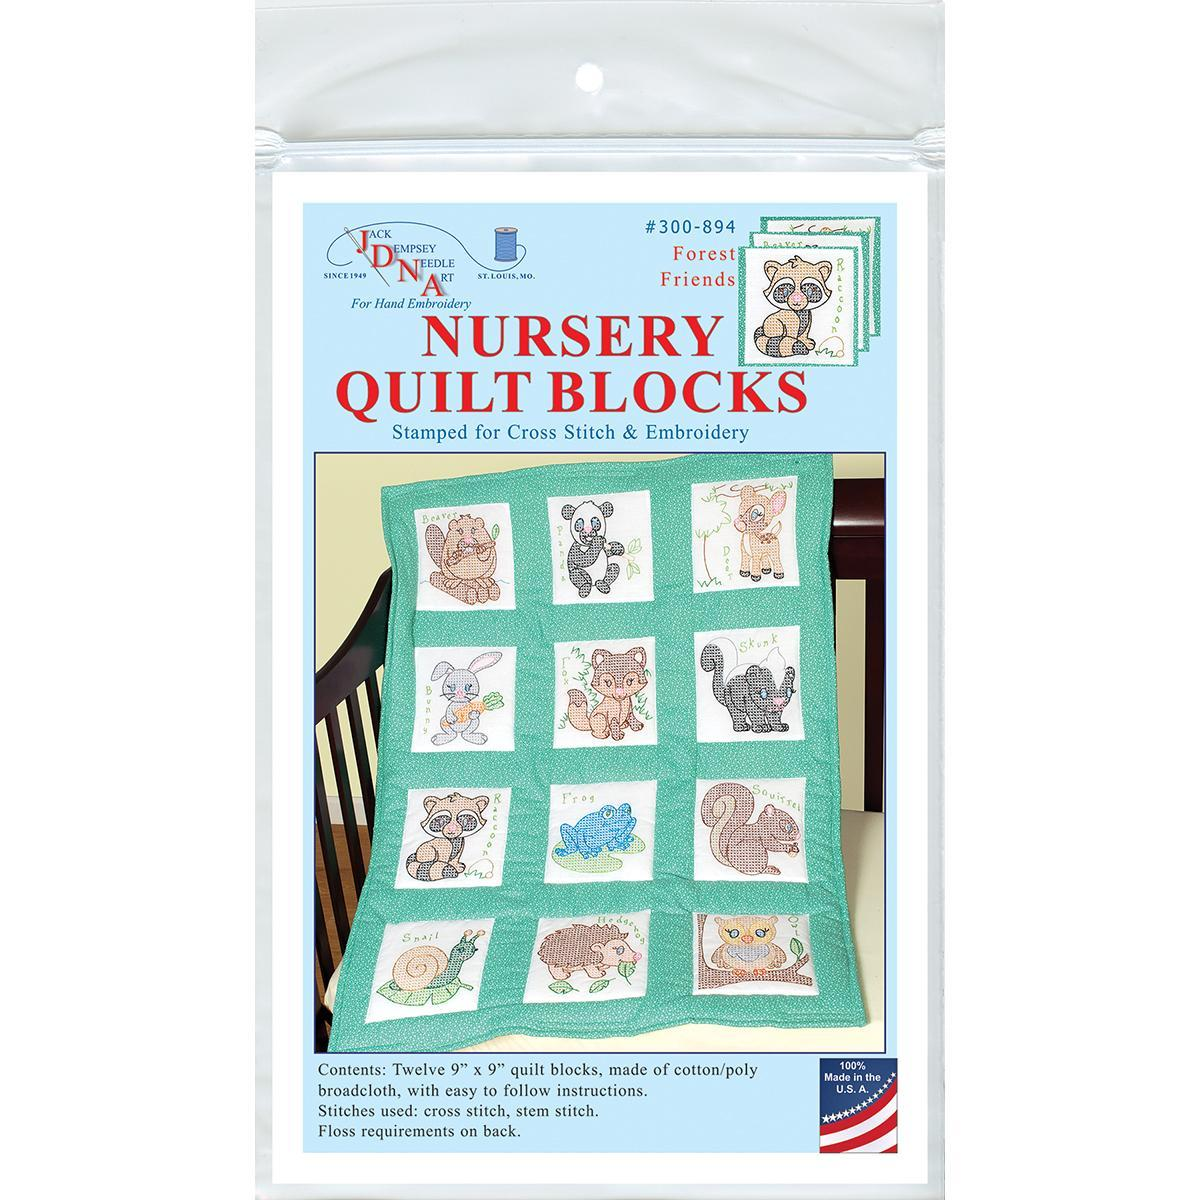 Jack Dempsey Stamped White Nursery Quilt Blocks 9 X9 12/P...